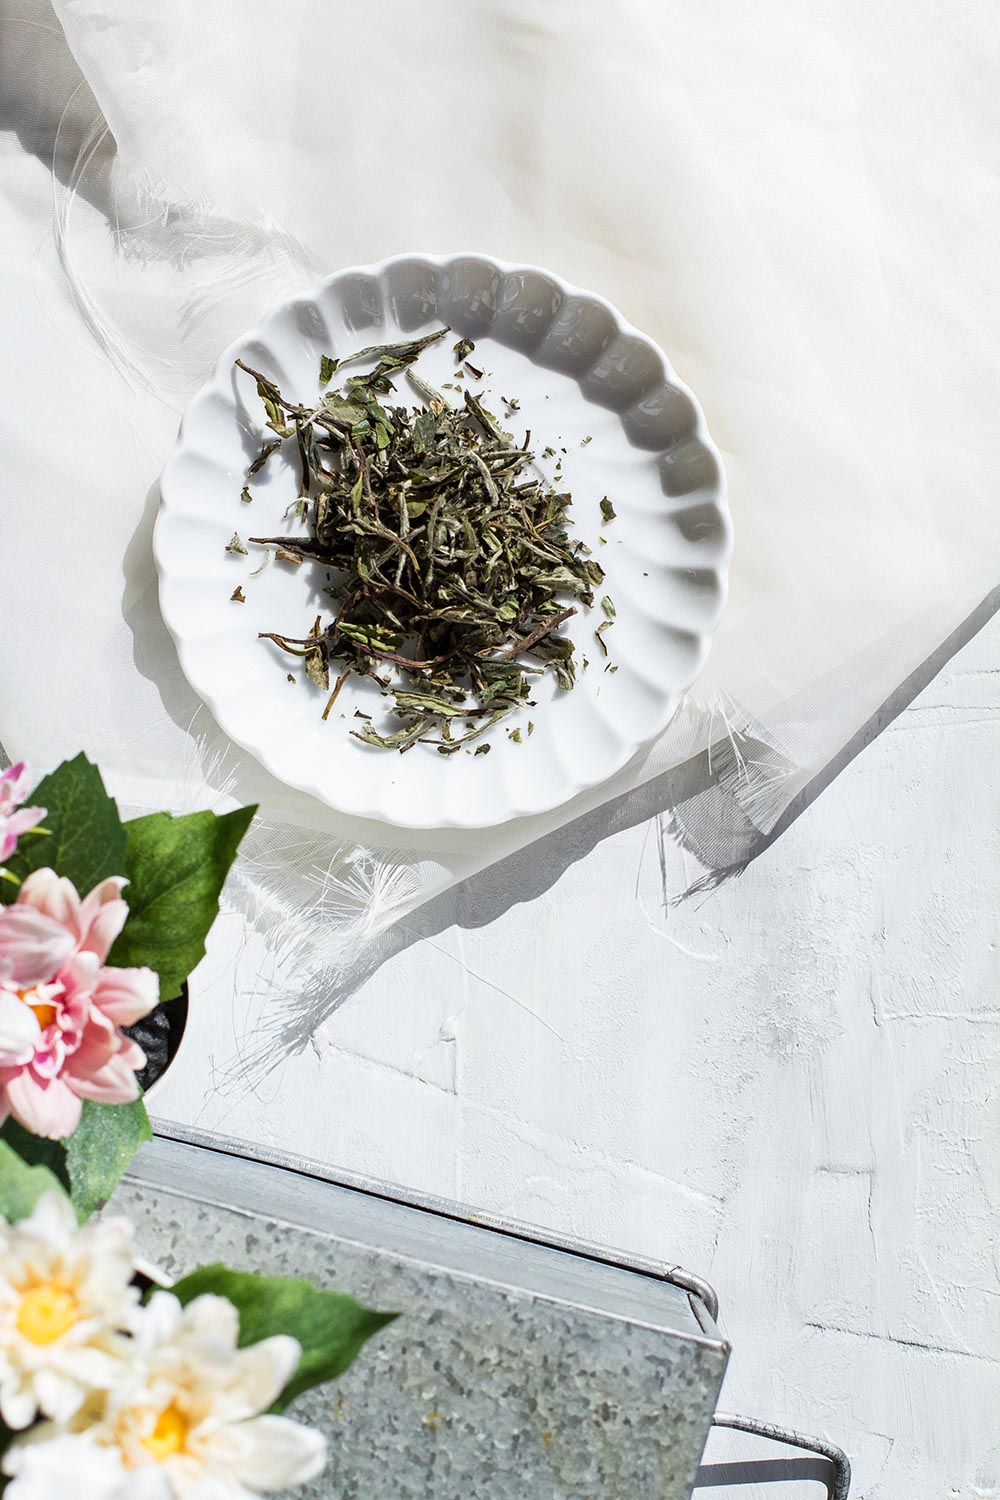 A vintage plate with white tea leaves.